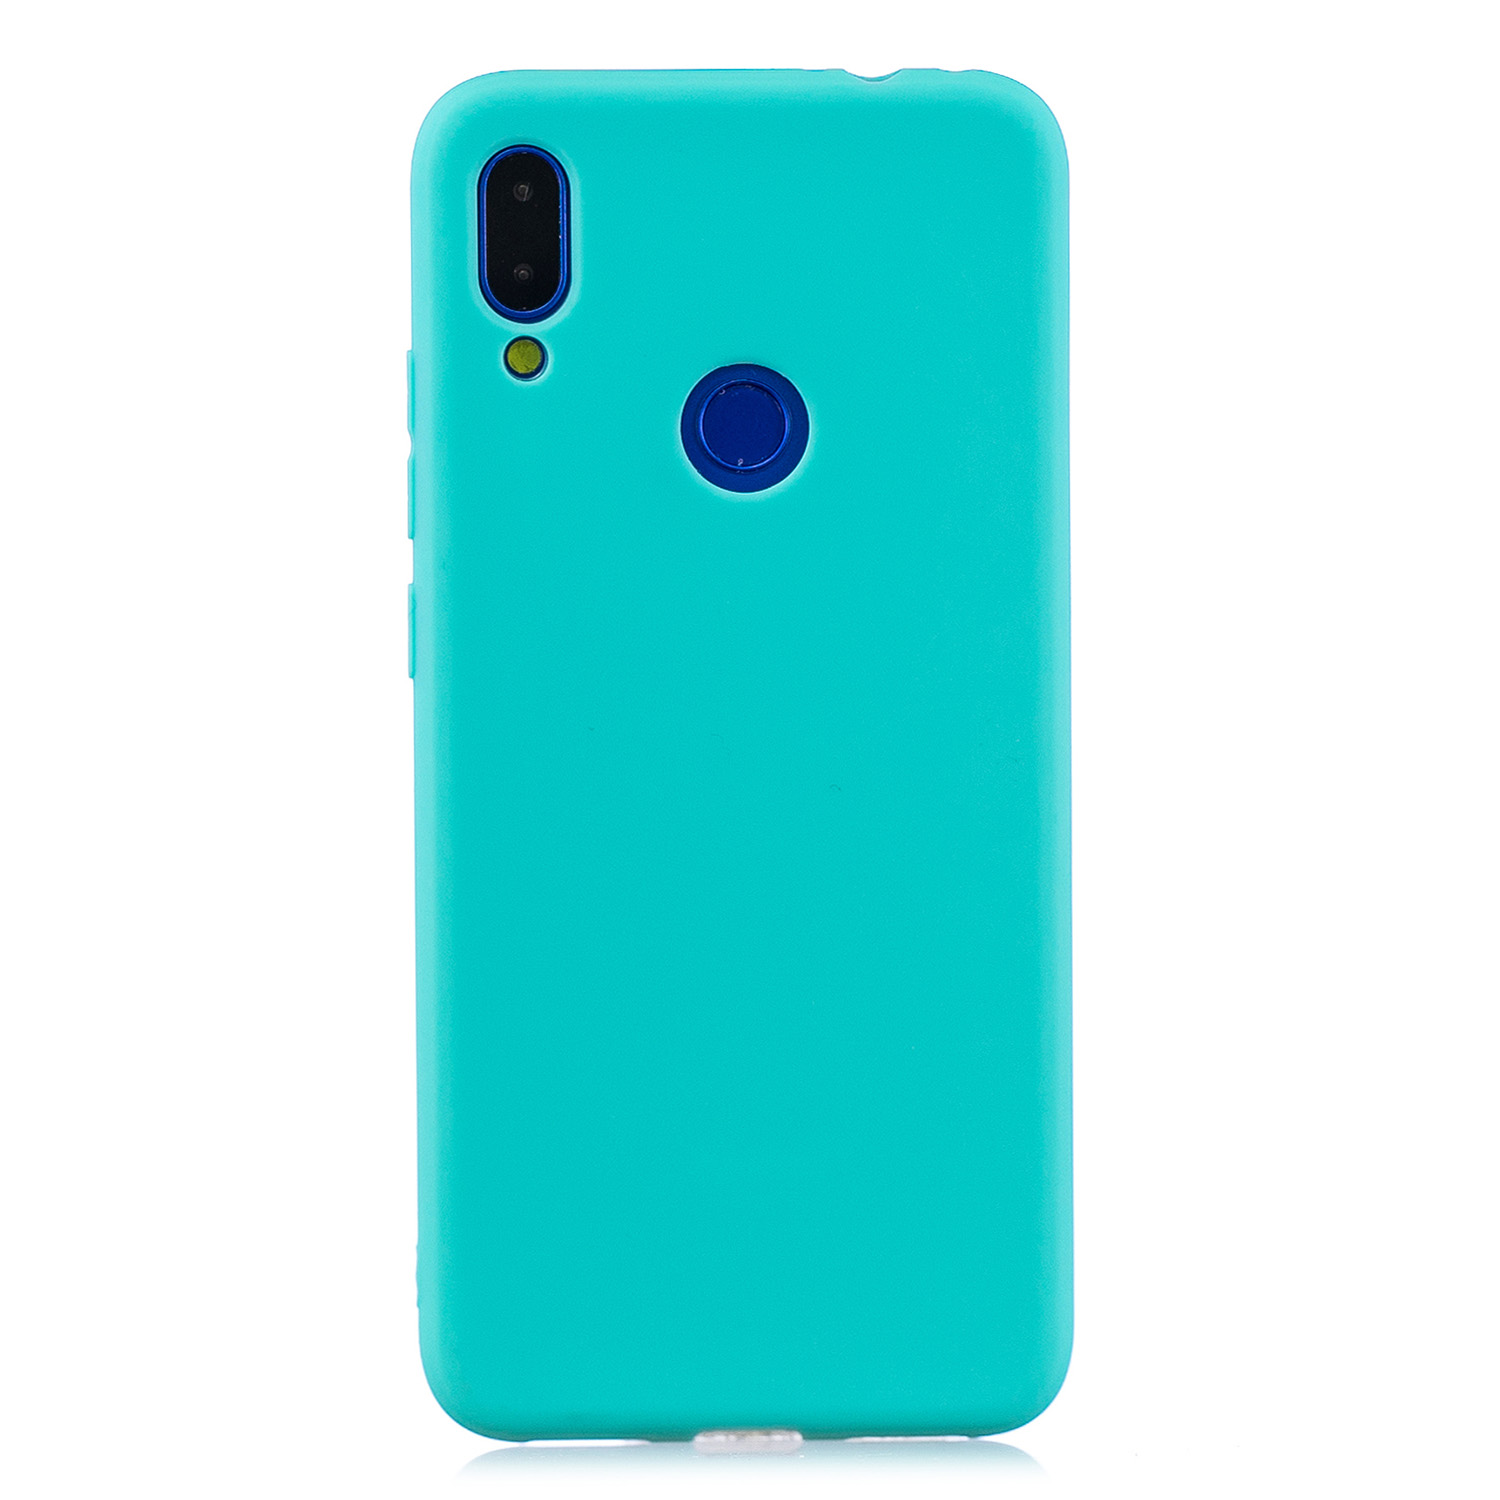 For Redmi 7 Lovely Candy Color Matte TPU Anti-scratch Non-slip Protective Cover Back Case Light blue